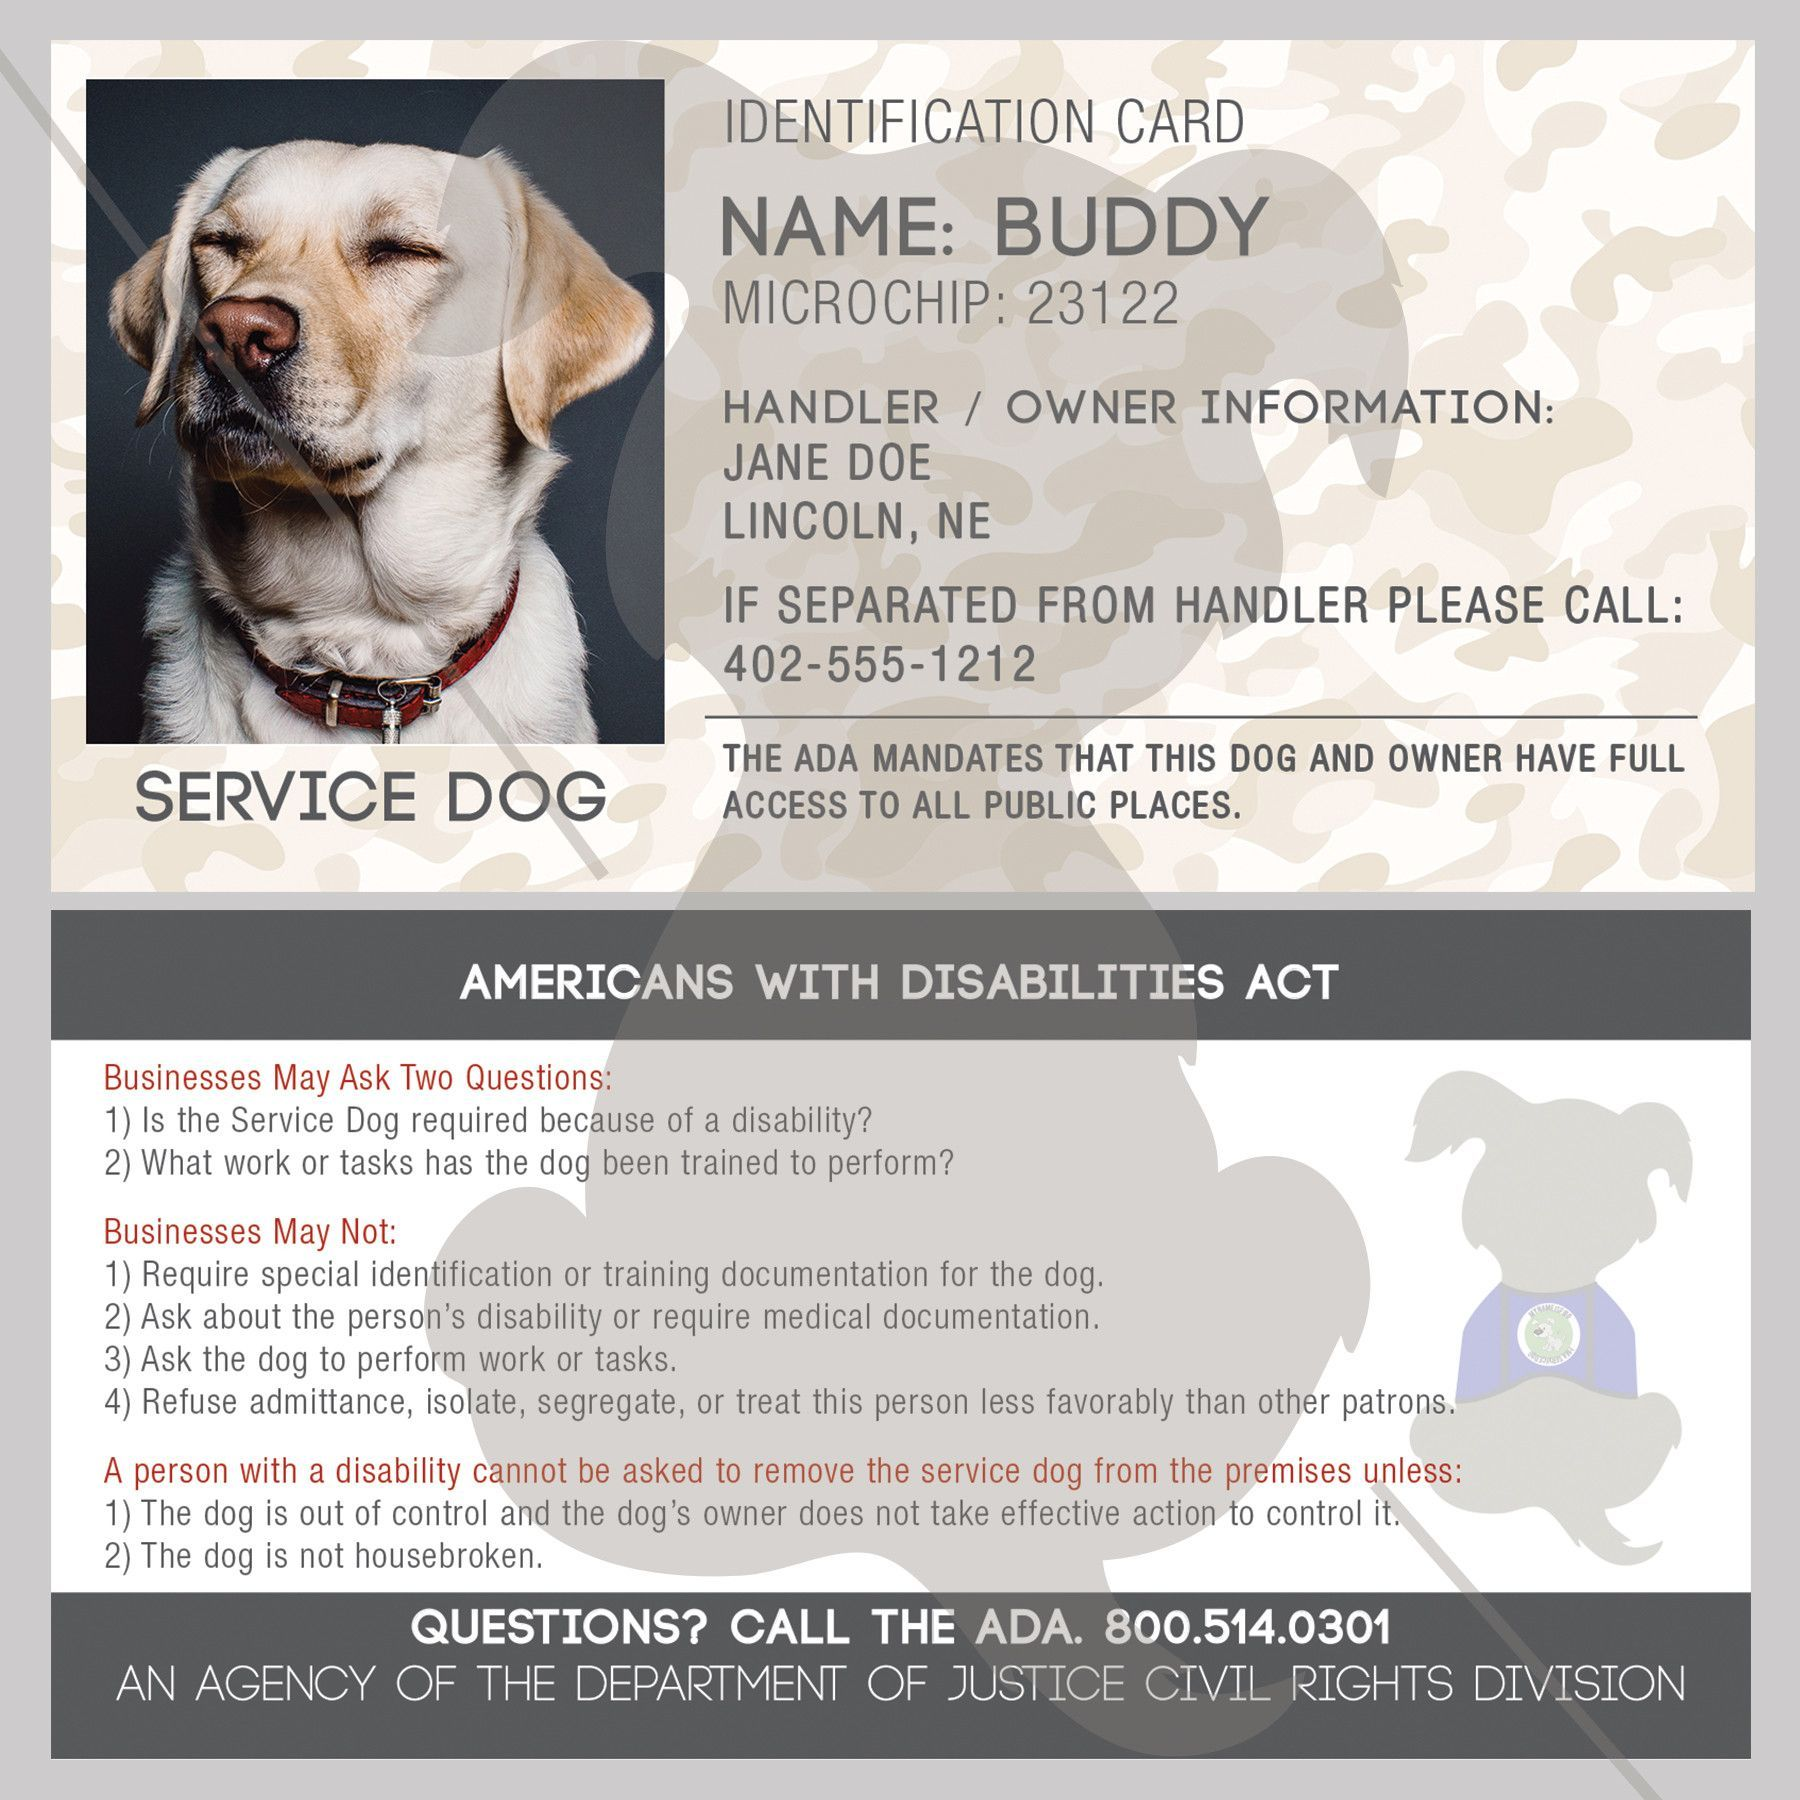 ID Card - Service Dog | Service dogs, Dog and German shepherds